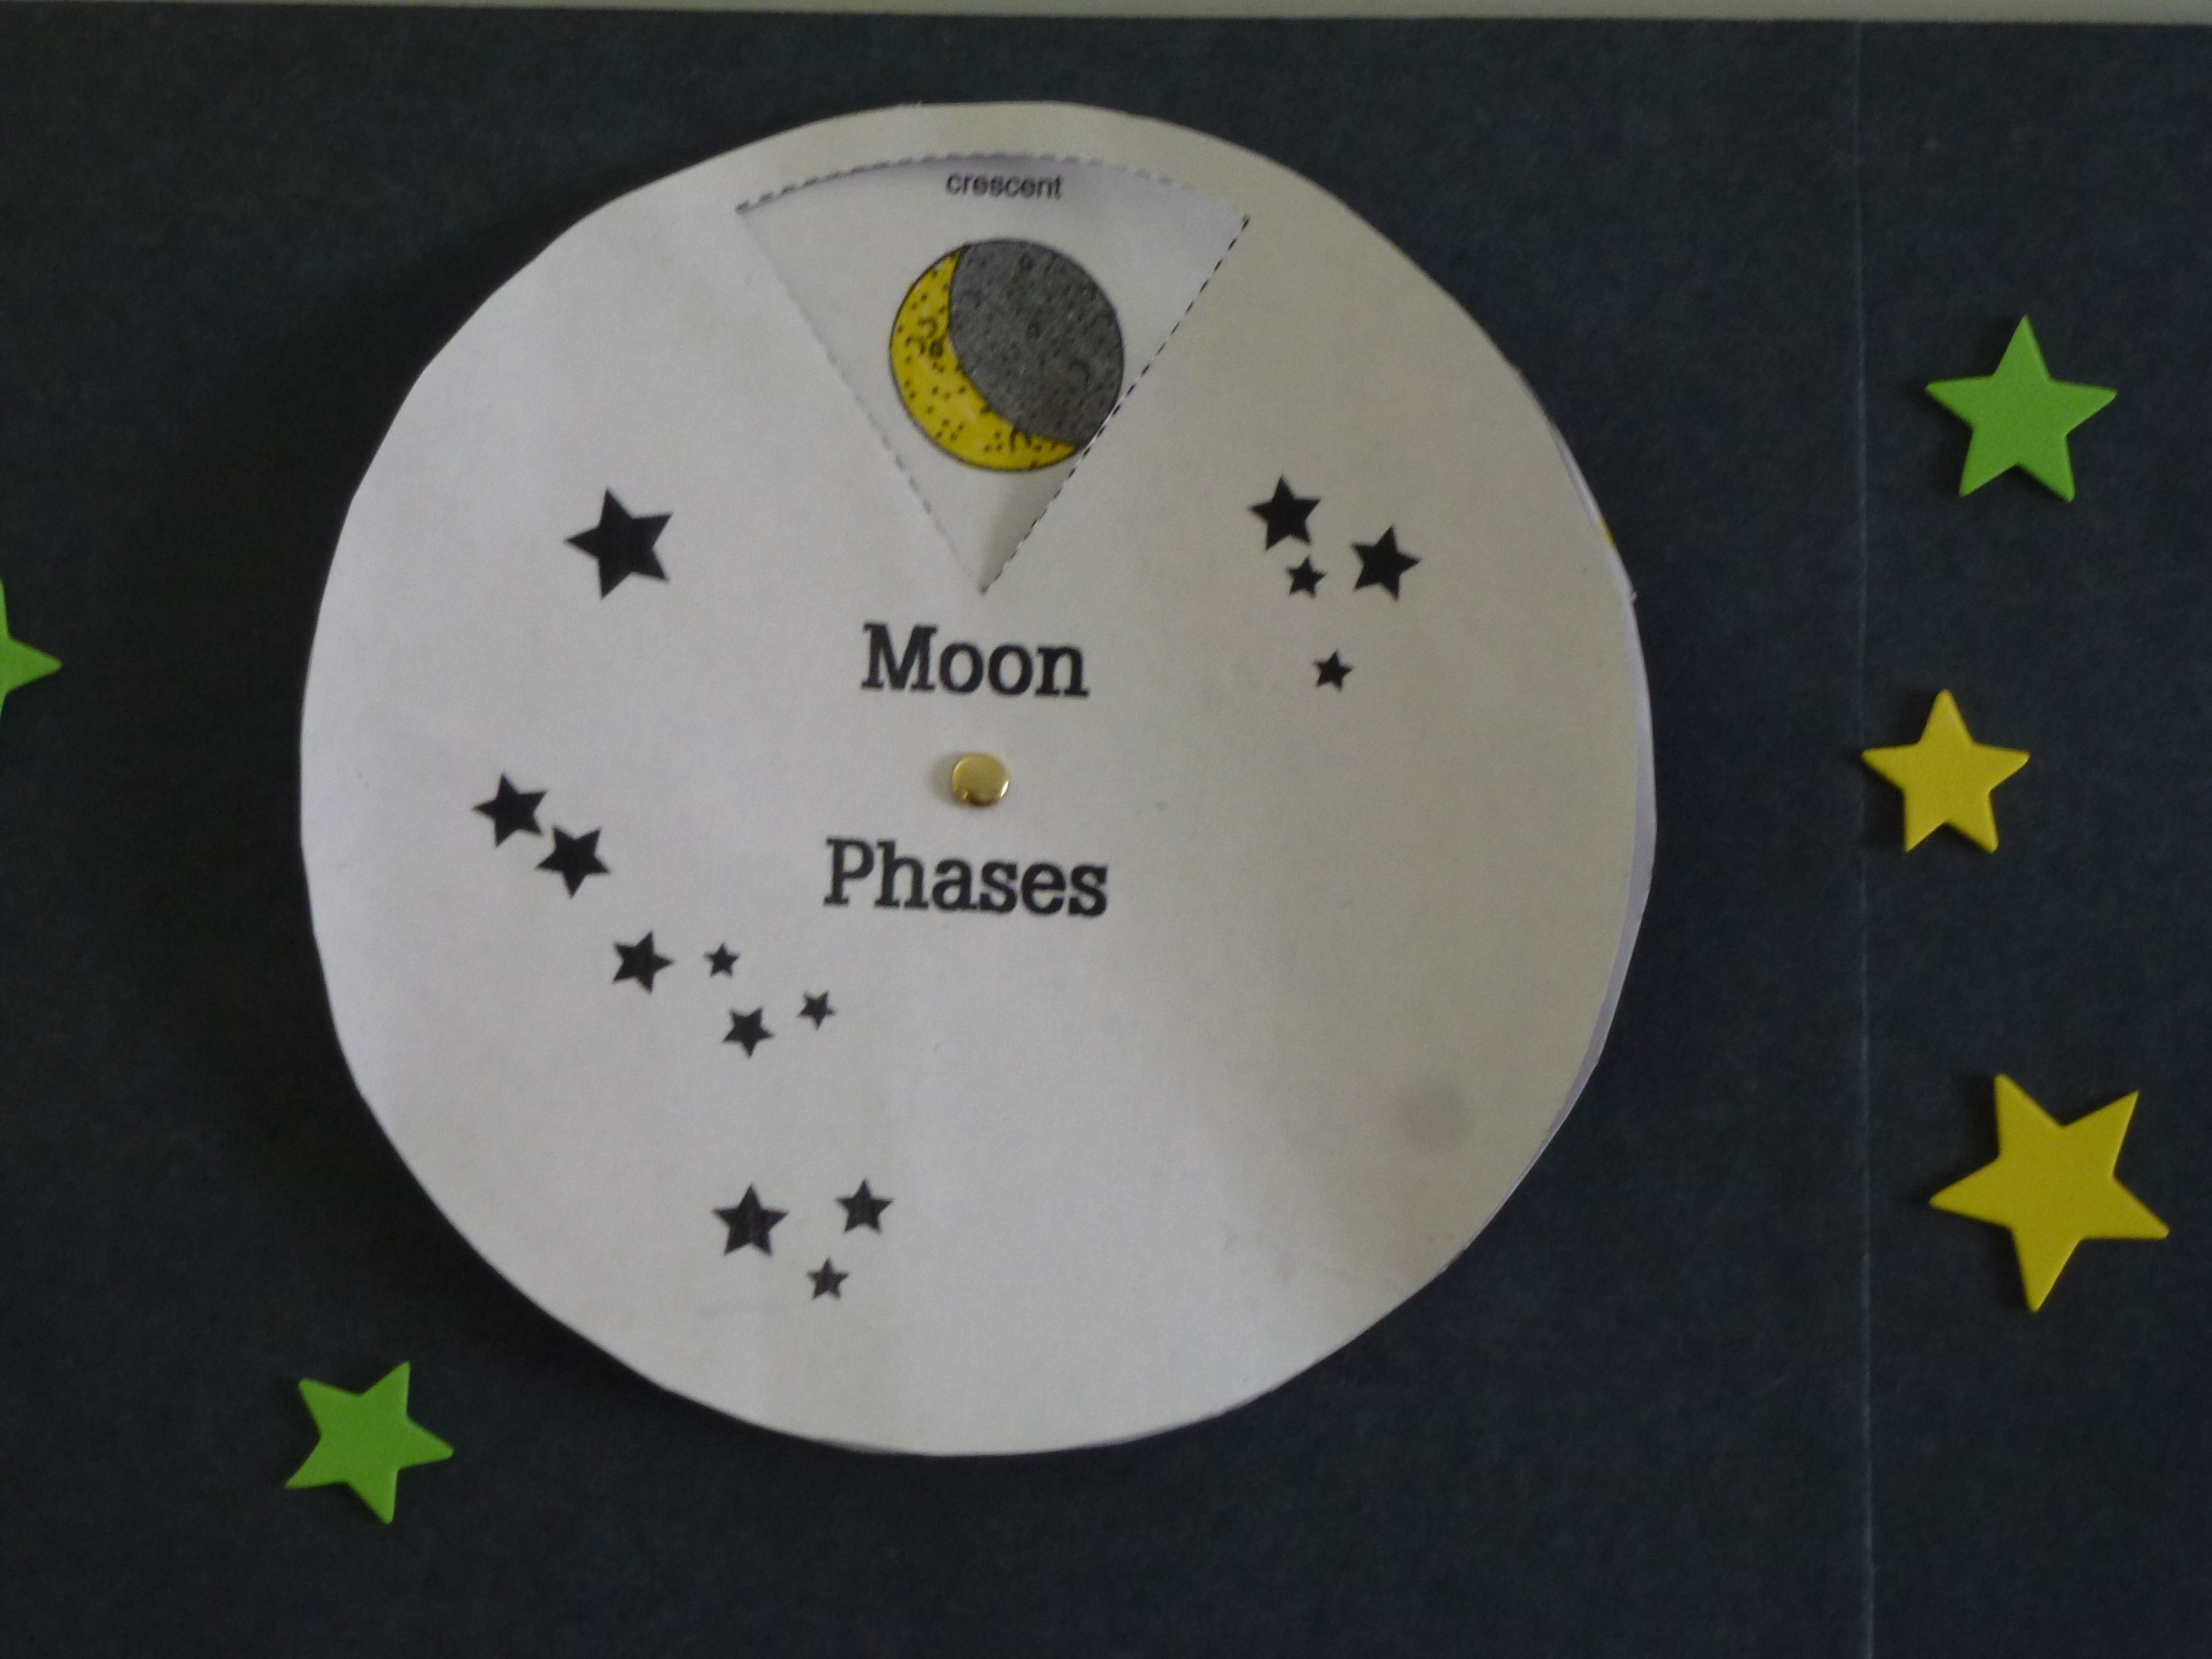 Moon Phase Wheel Printable